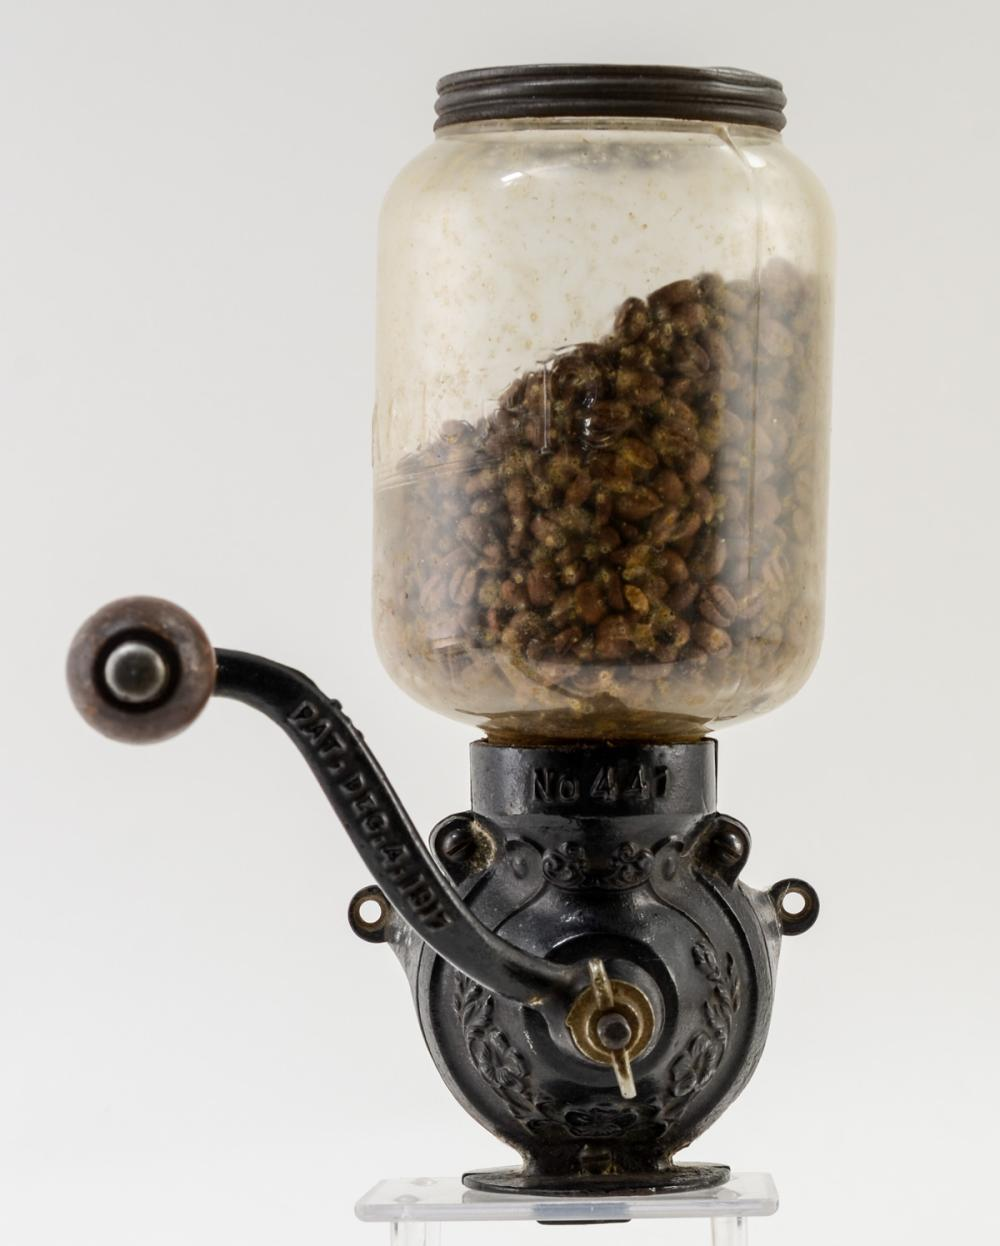 Charles Parker Coffee Grinder No. 441